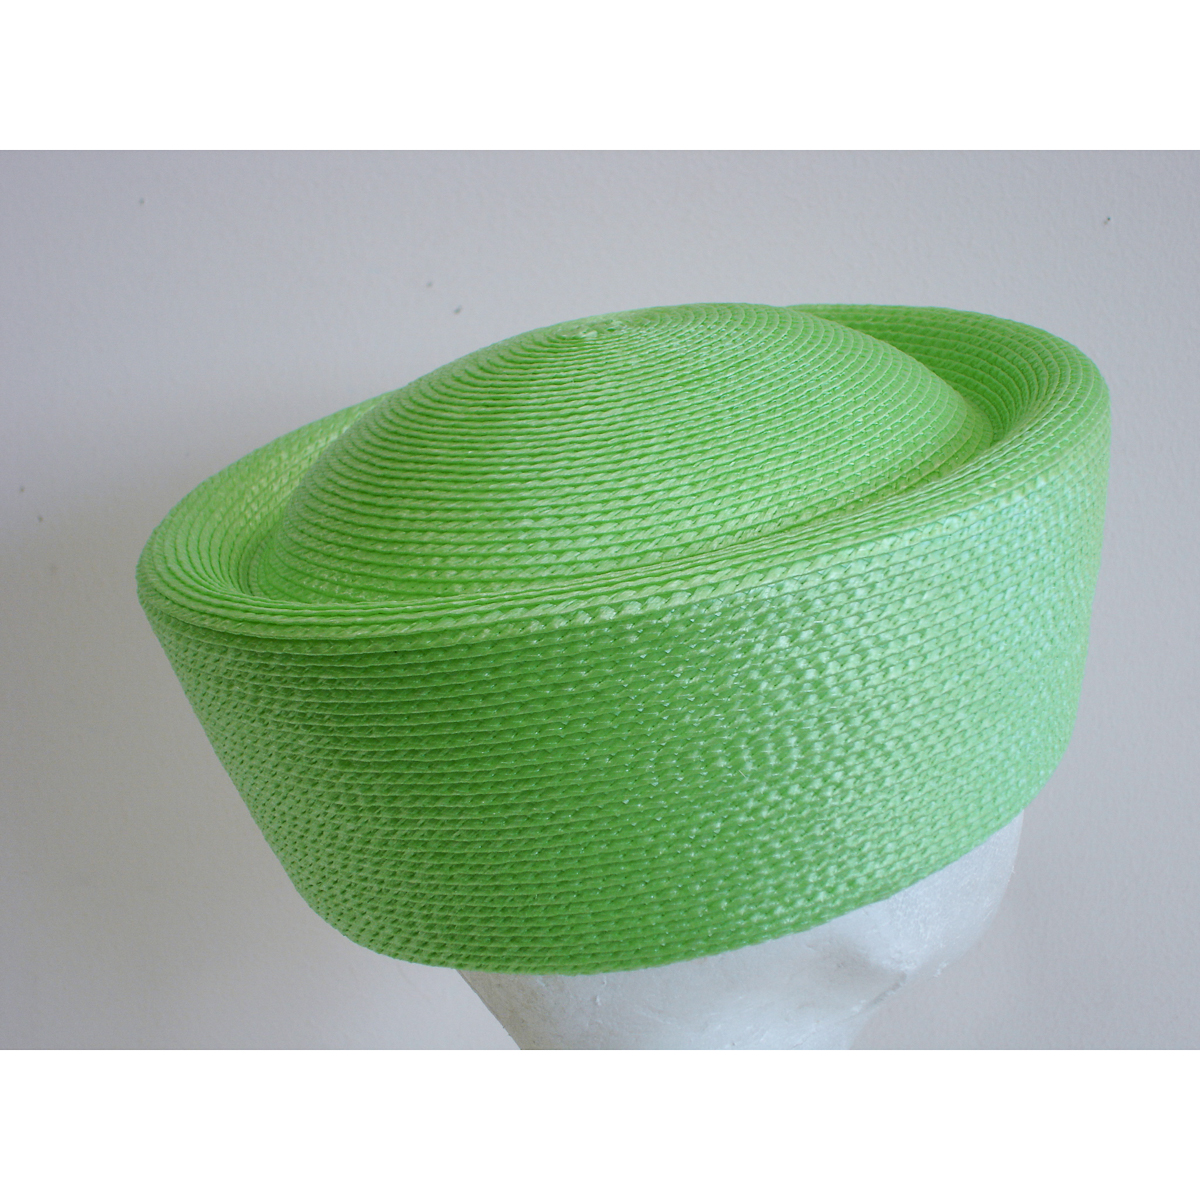 Apple Green Pillbox Plain Hats-UW01R-0-18- Sun Yorkos  9ba681abb97